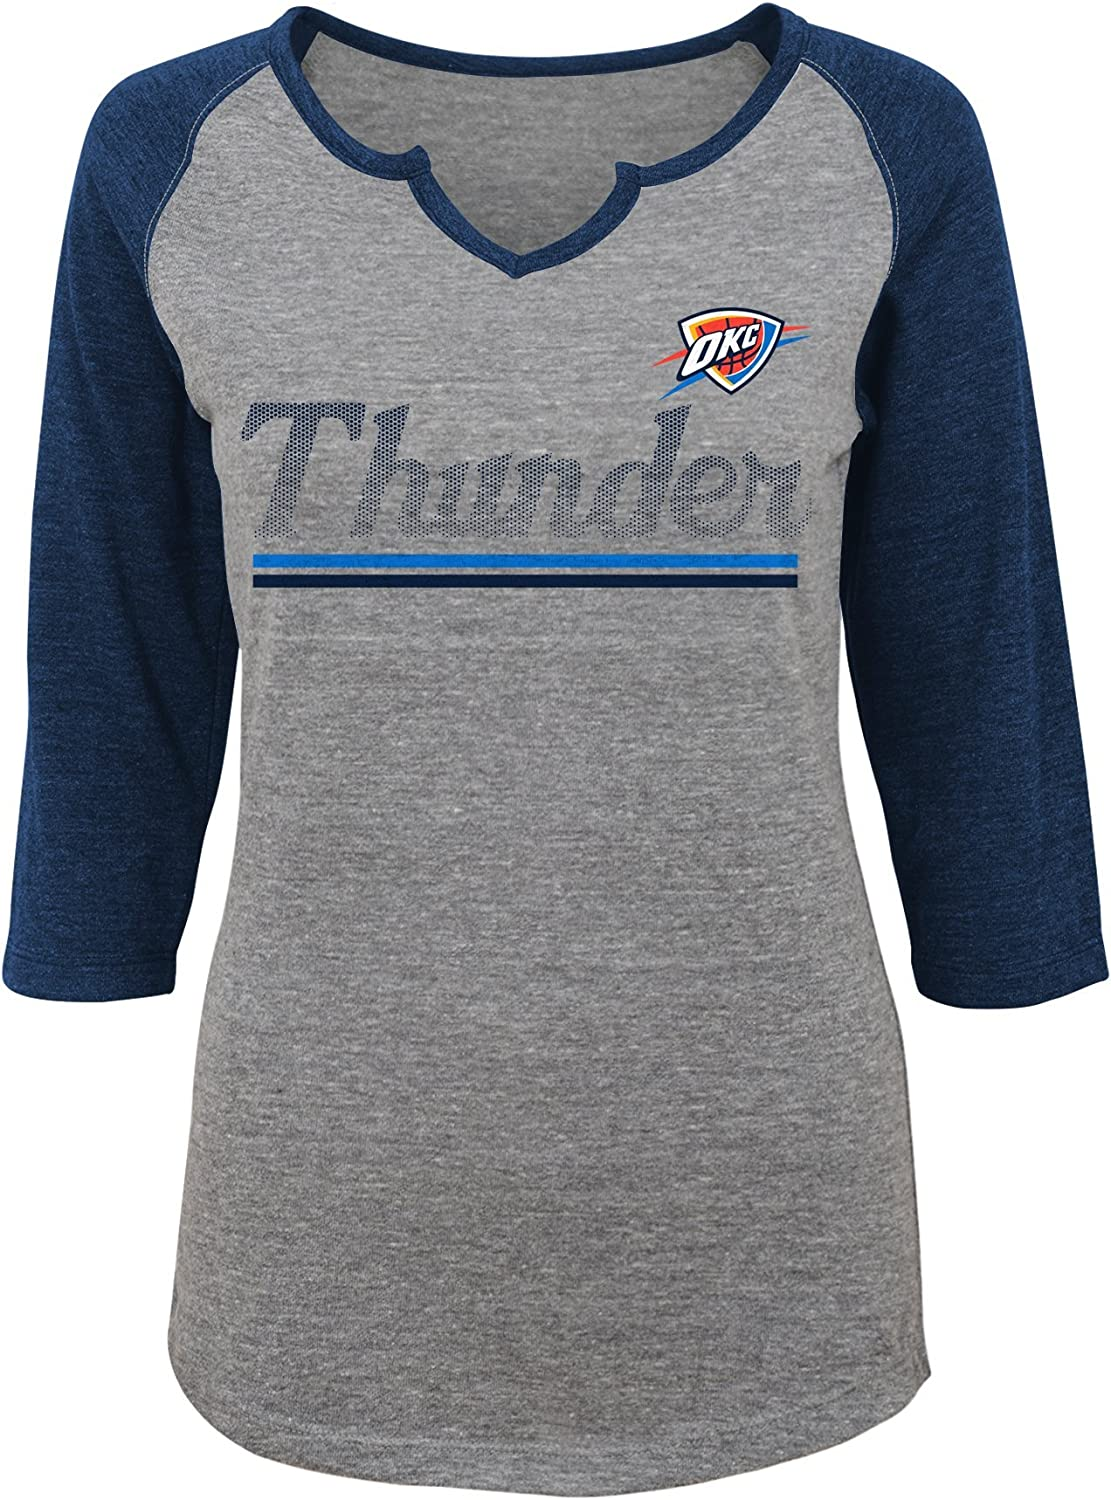 0-1 NBA Junior Girls Over the Line 3//4 Tee Shirt Oklahoma City Thunder-Dark Grey Heather-XS